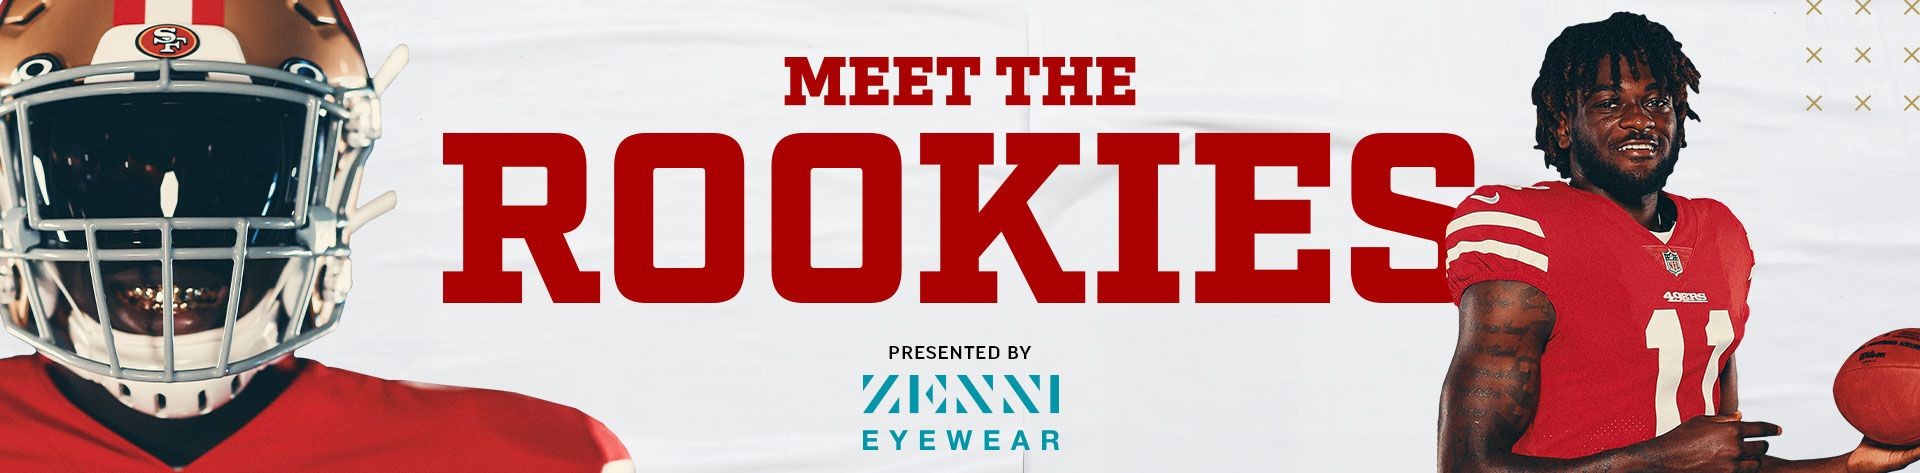 MeetTheRookies_WEB-HEADER